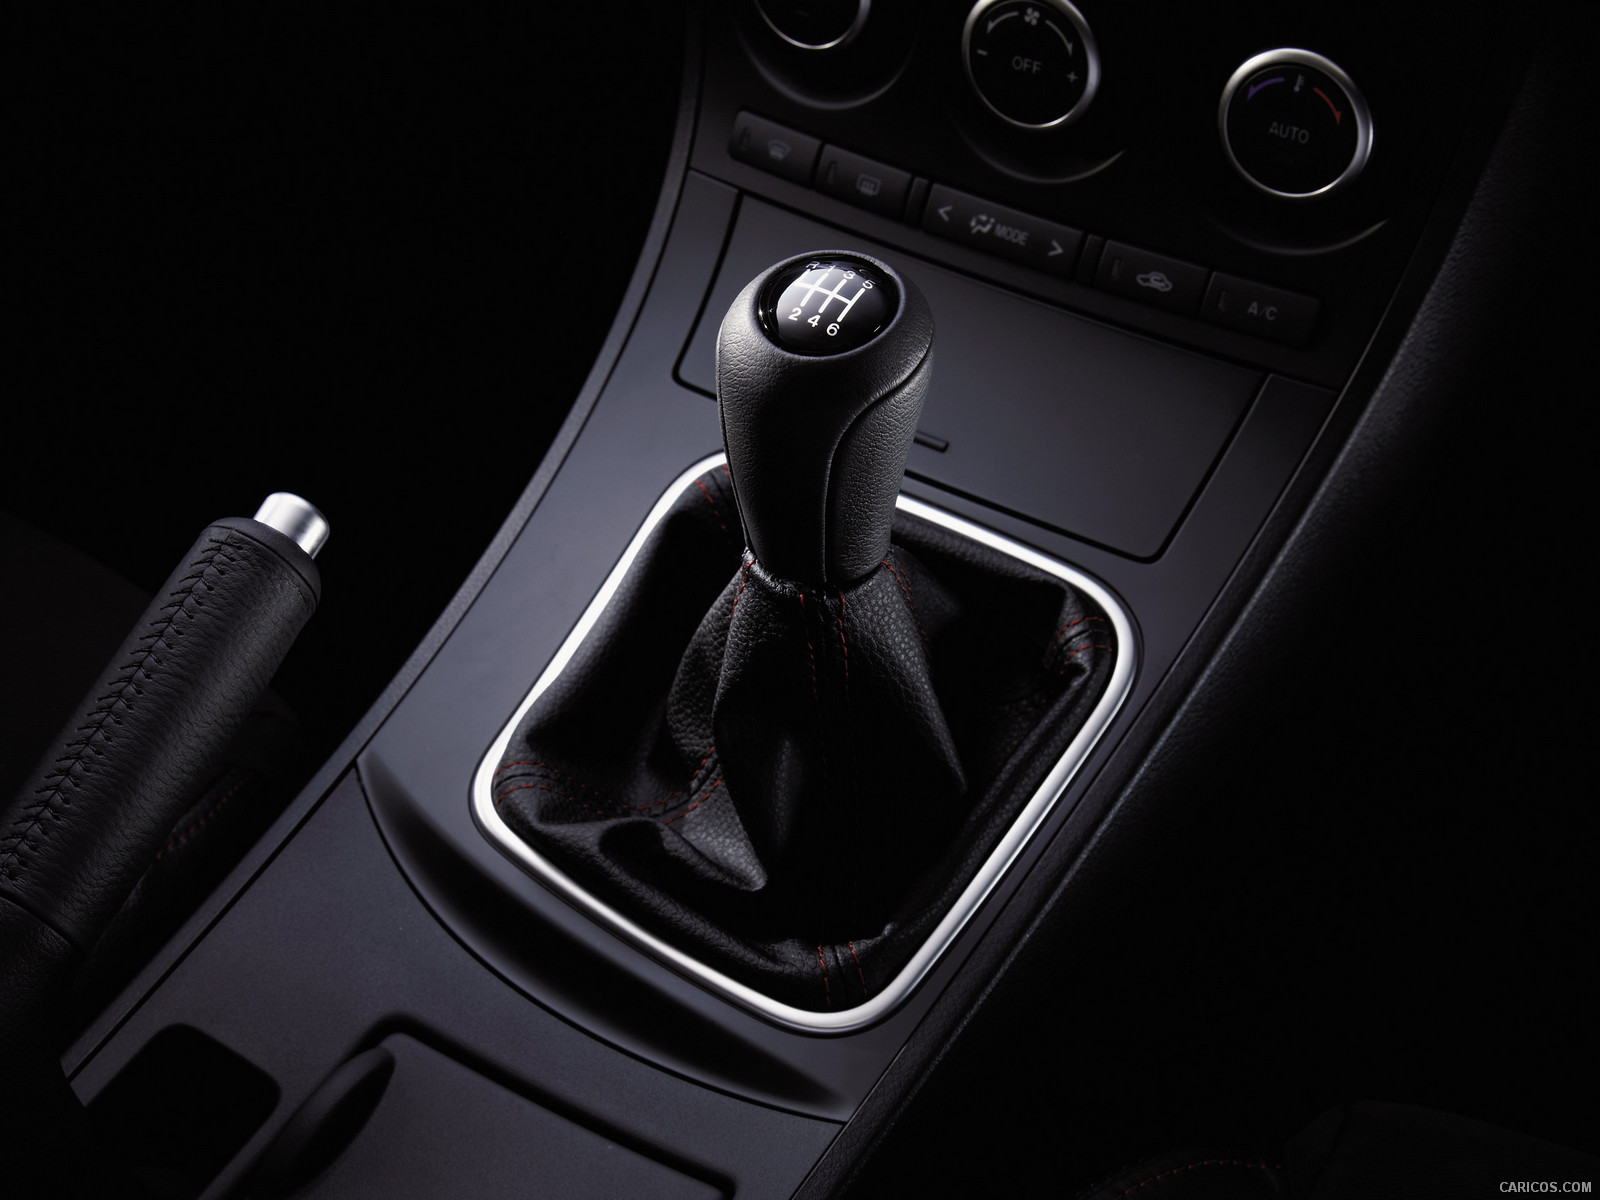 2012 Mazda MazdaSpeed 3 Shift Knob Wallpaper 6 1600x1200